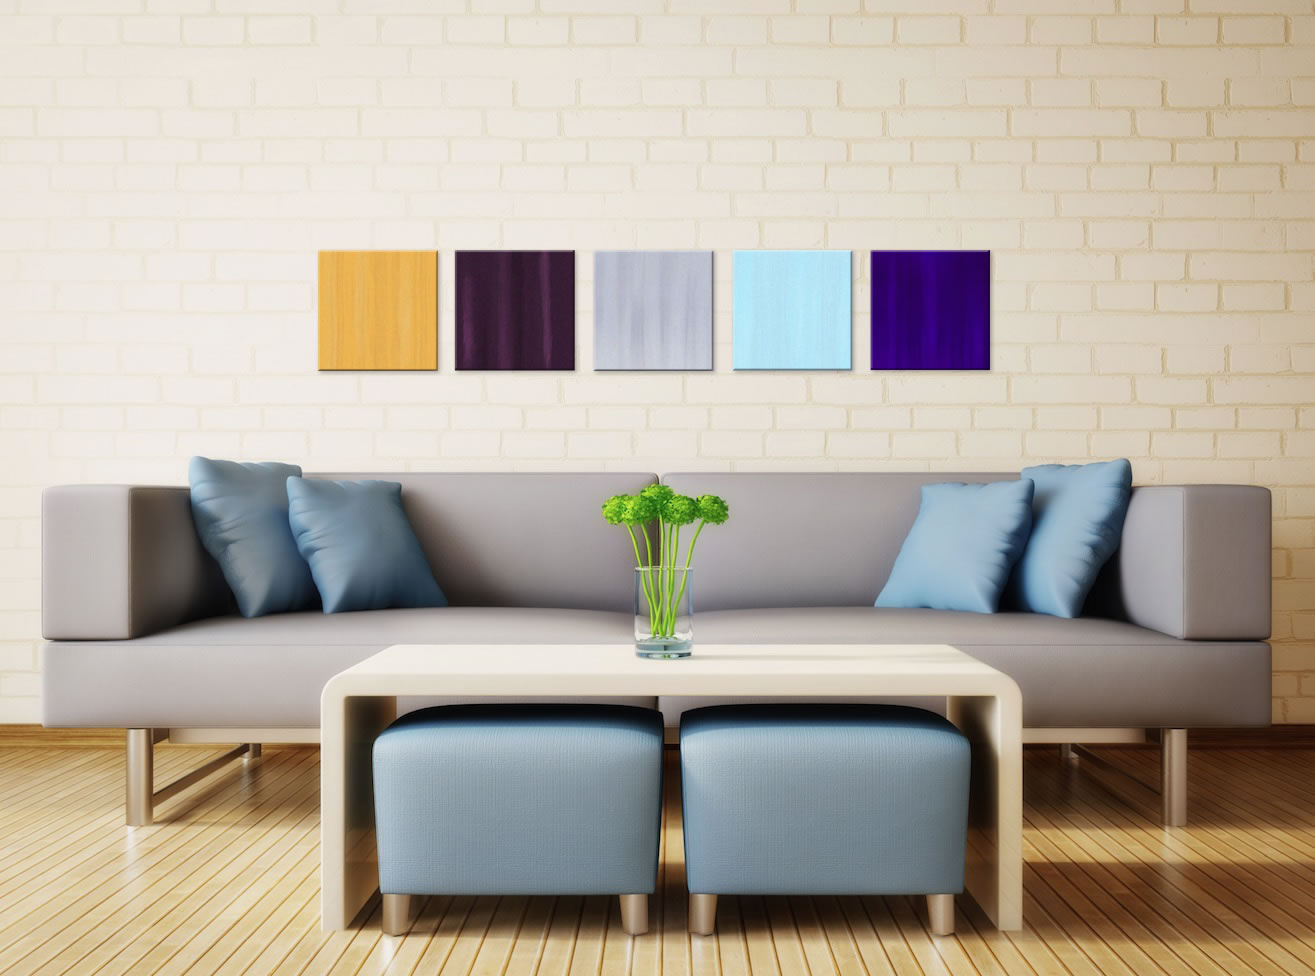 Dazzle - Colorful Contemporary Accents by Celeste Reiter - Lifestyle Image